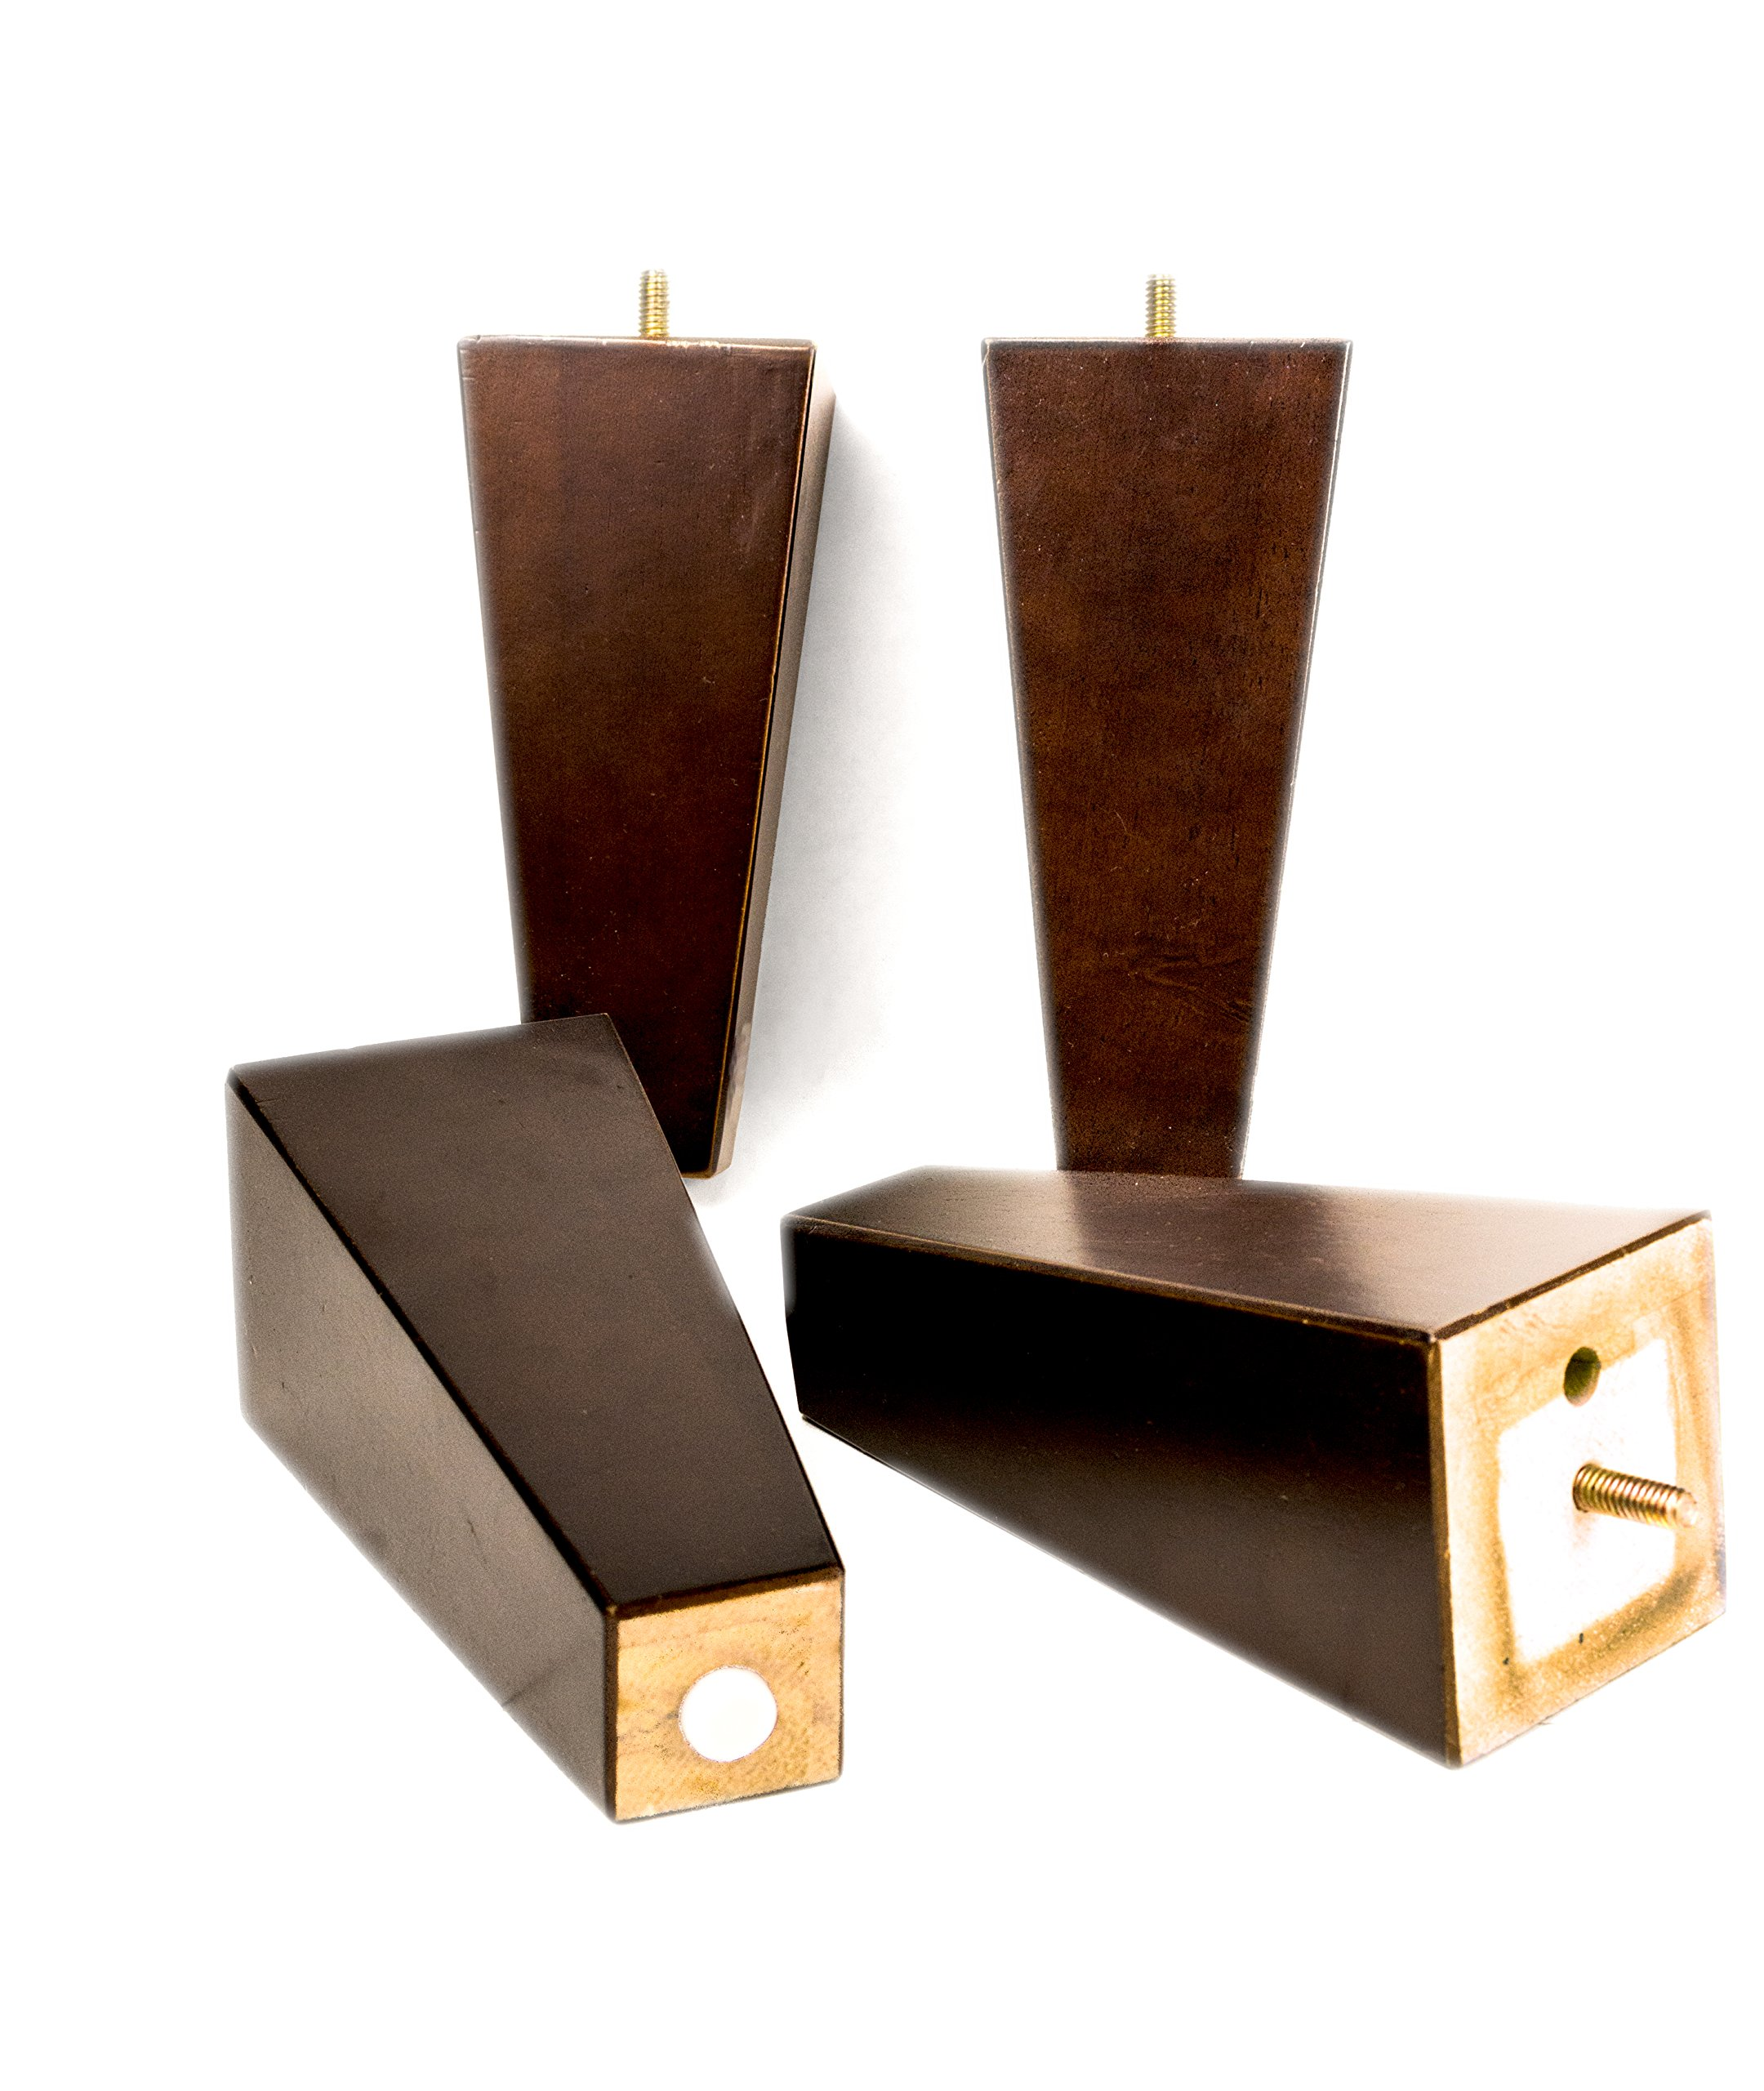 MJL Furniture Designs Large Wooden Square/Block Shaped Replacement Sofa or Ottoman Threaded Leg (Set of 4), Espresso, 7-1/4'' x 3'' x 3''